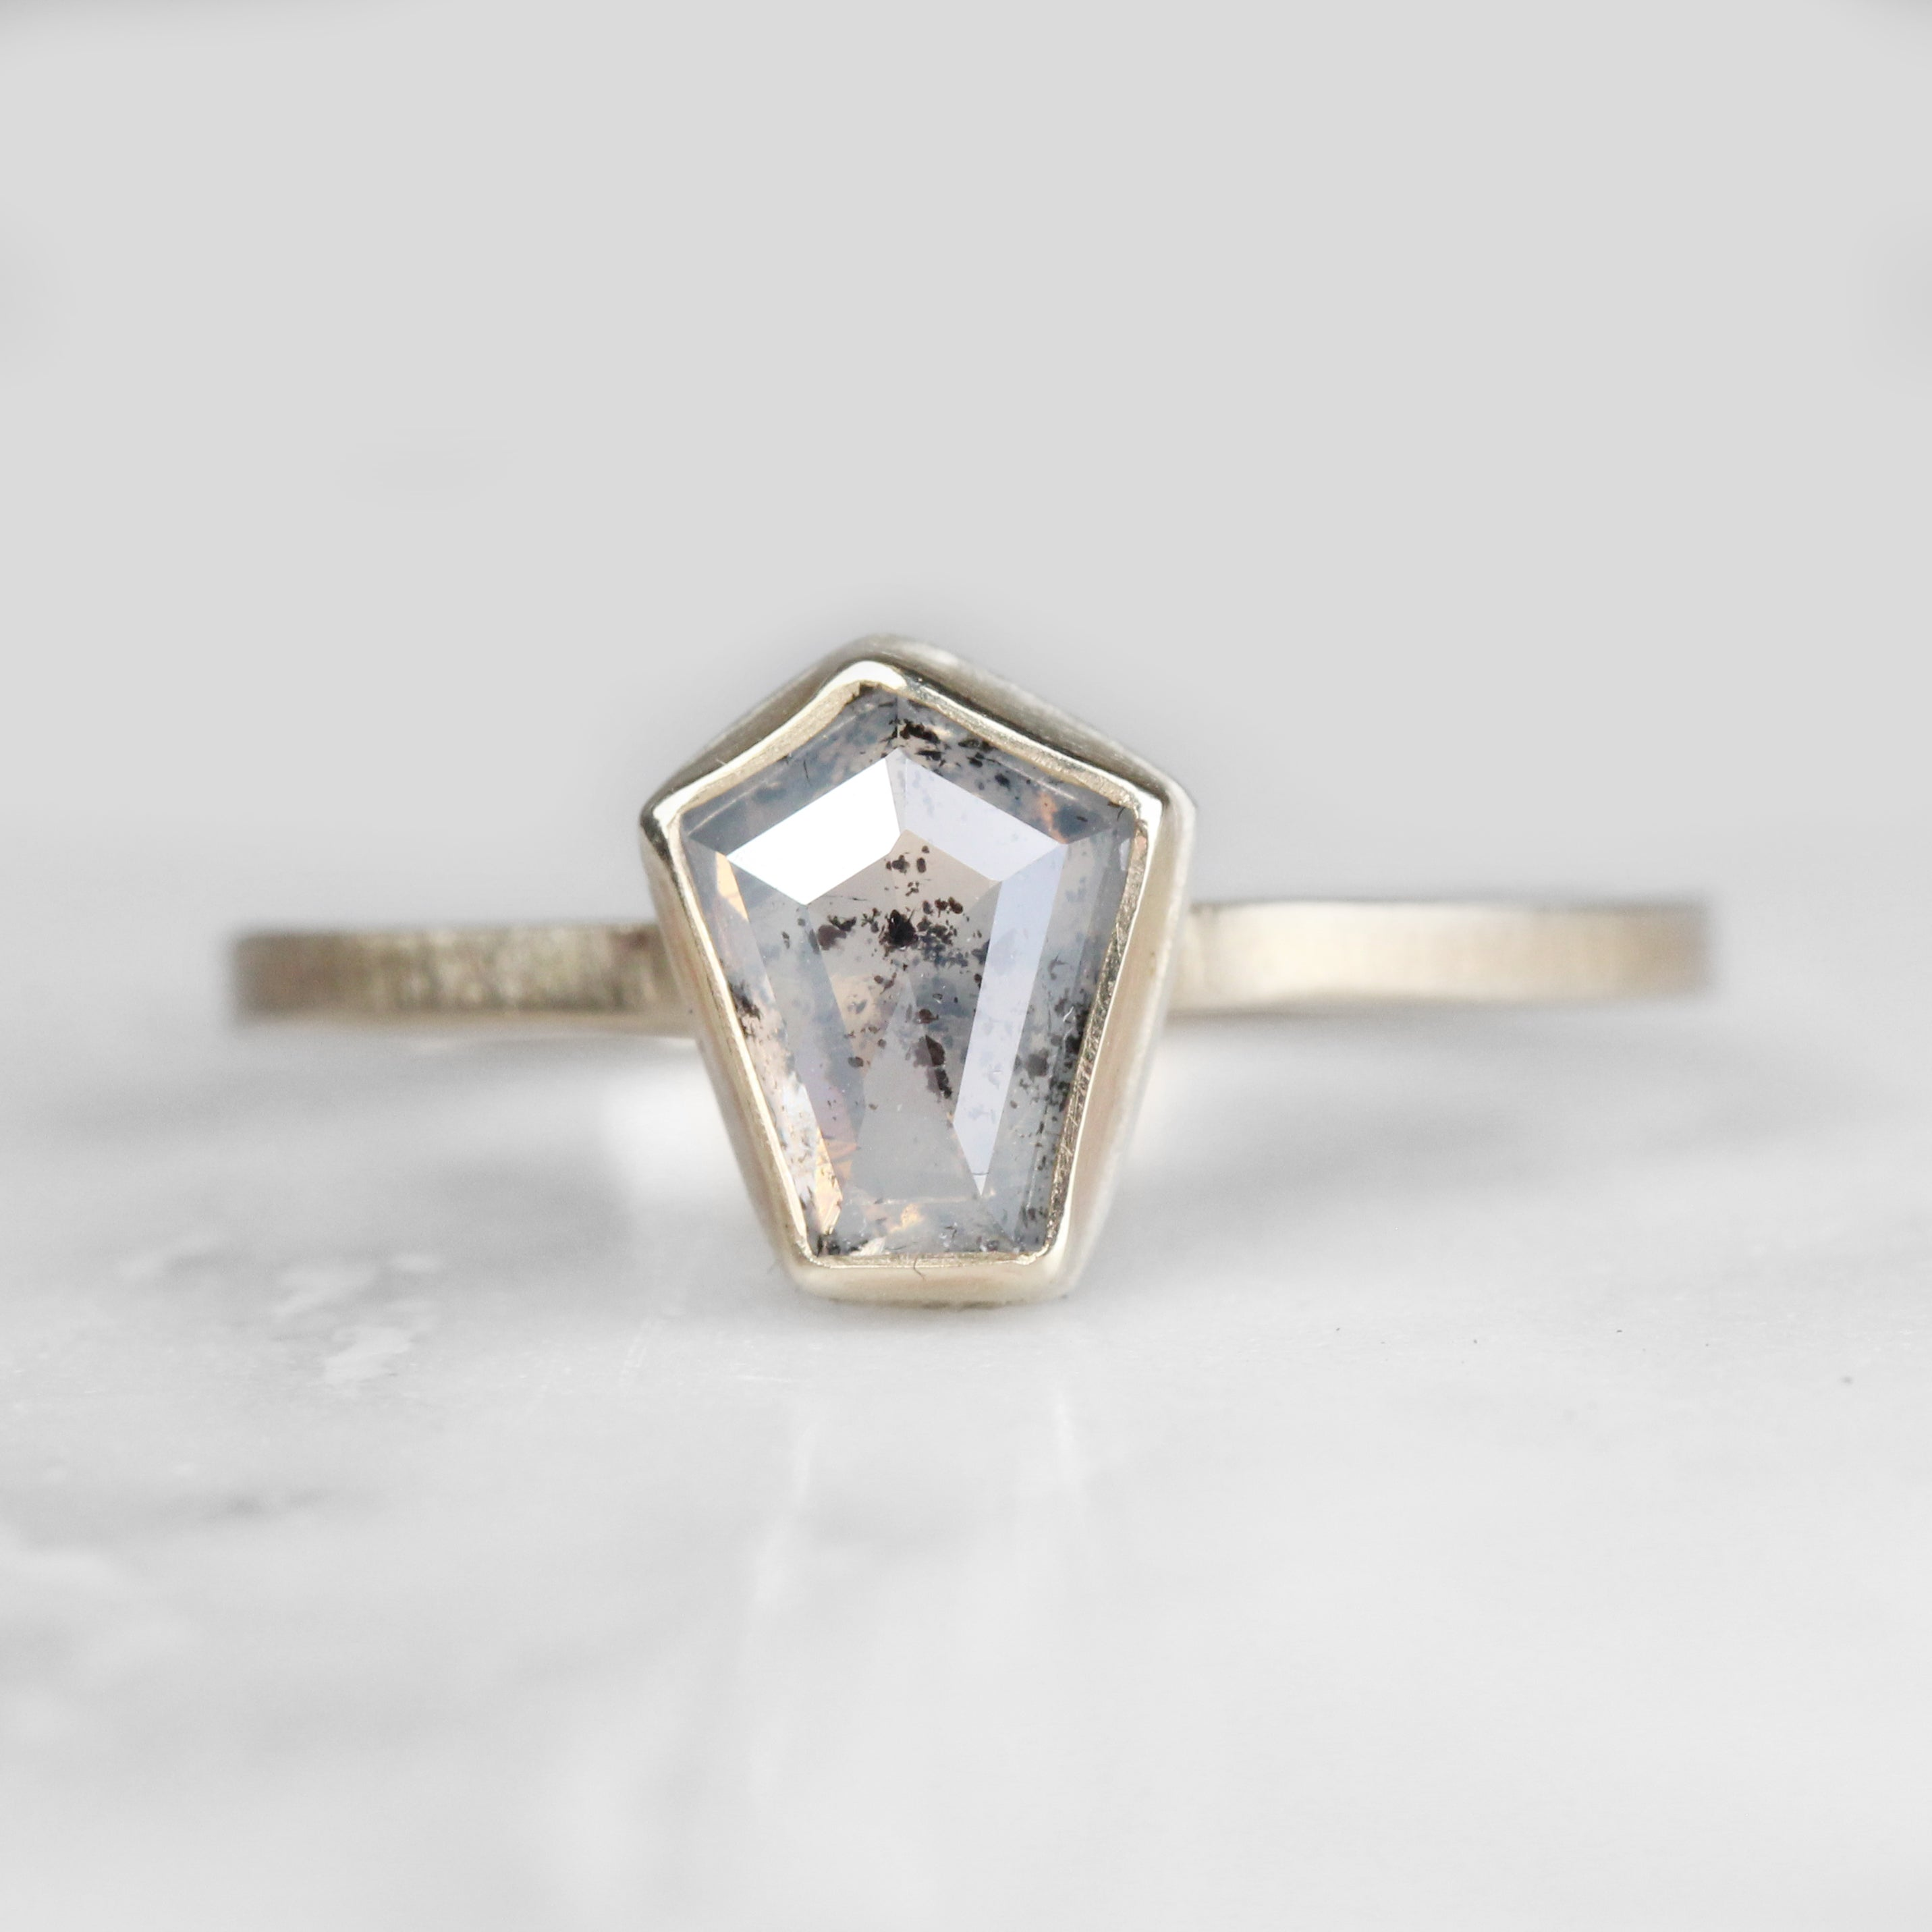 .75 carat milky gray / white pentagon geometric bezel set diamond solitaire ring - ready to size and ship - Celestial Diamonds ® by Midwinter Co.